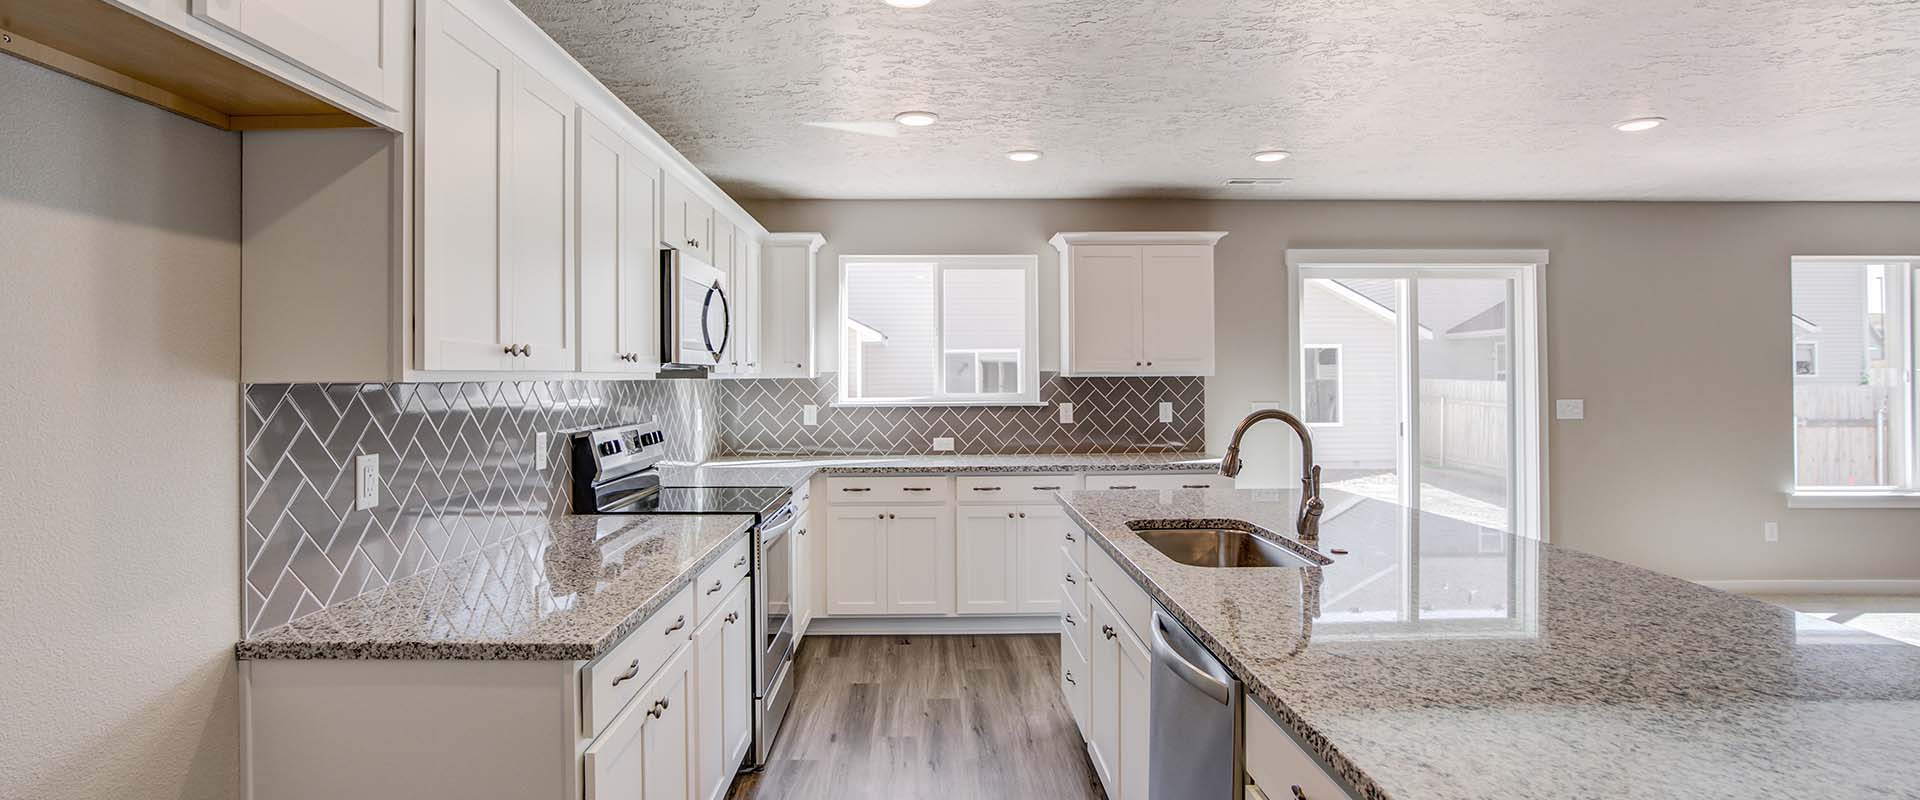 Opal-Bonus-Kitchen1-new-homes-boise-idaho-hubble-homes.jpg